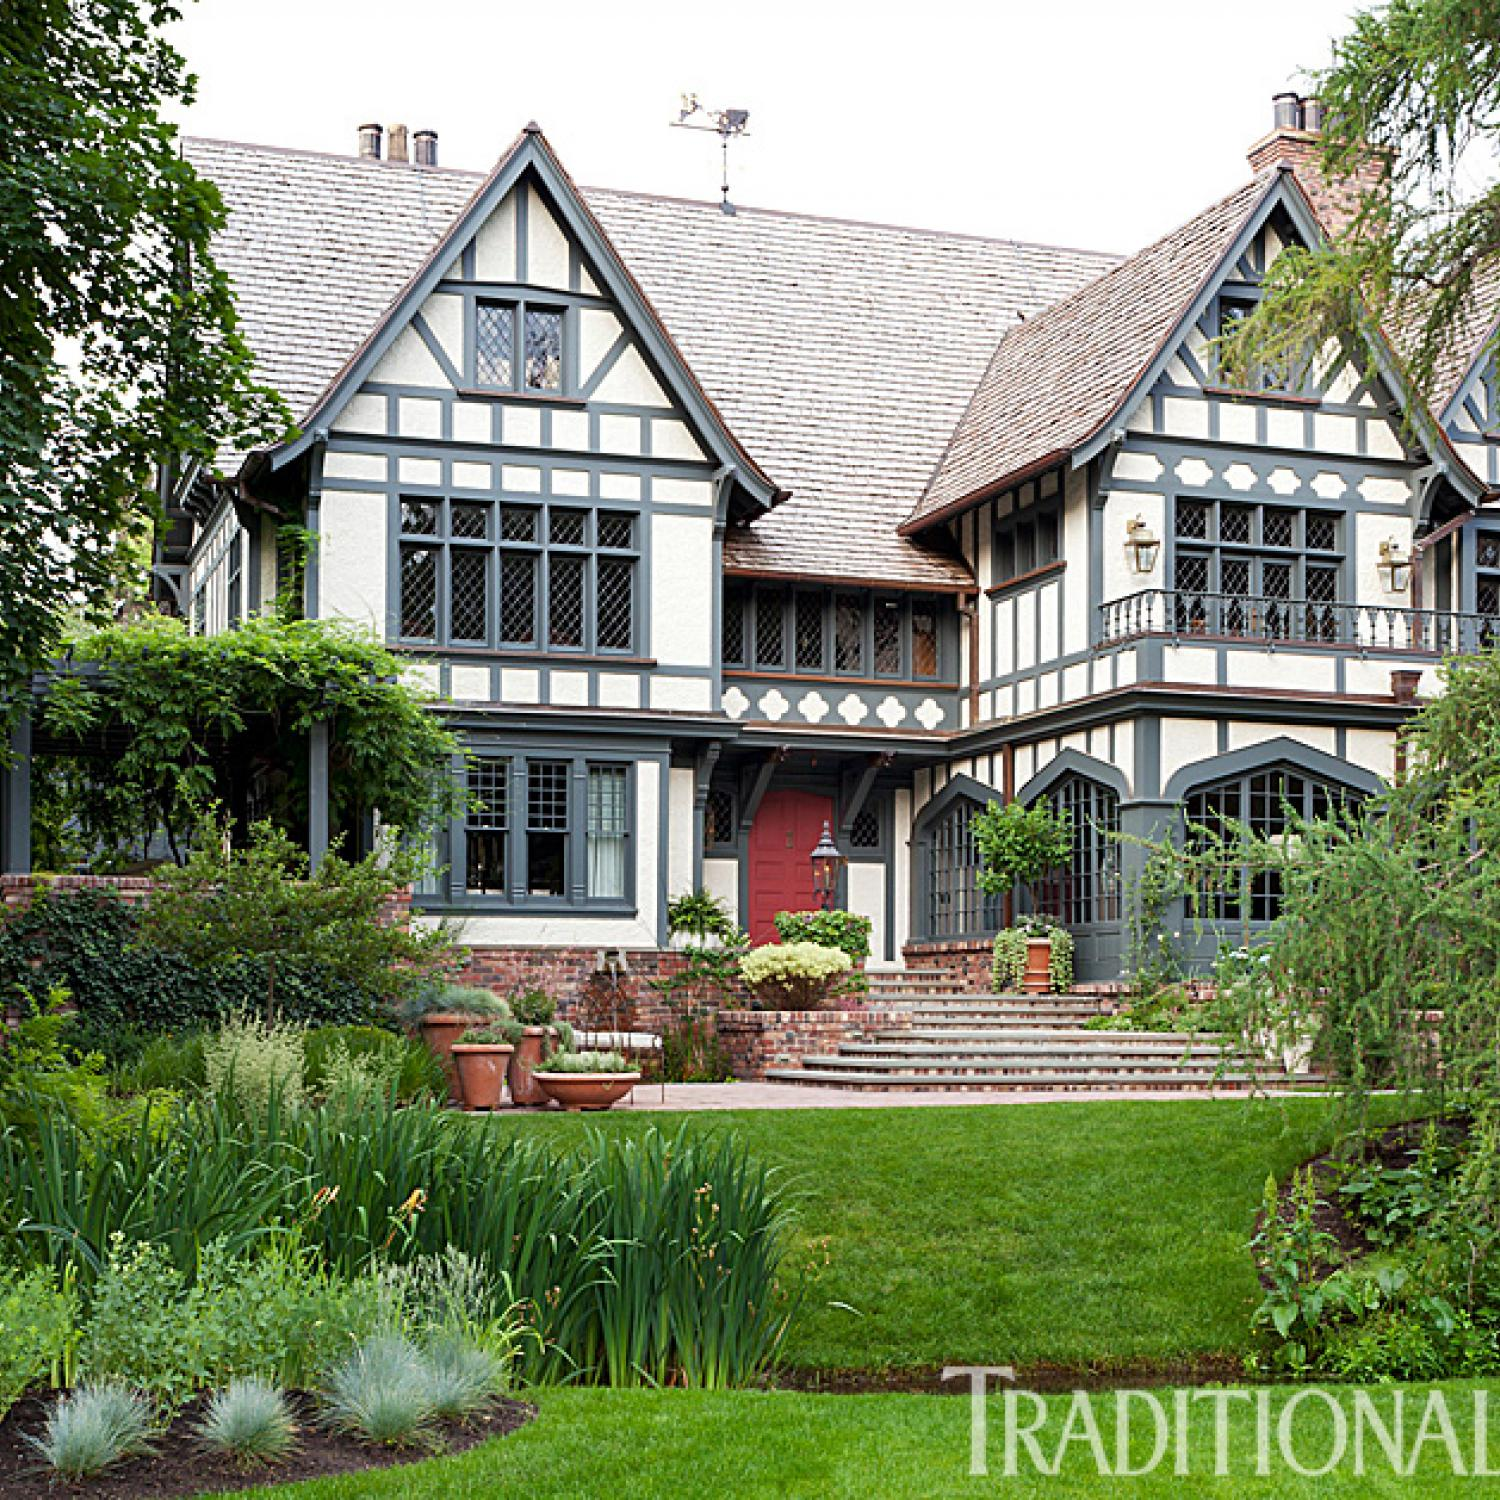 Meticulously restored tudor house in utah